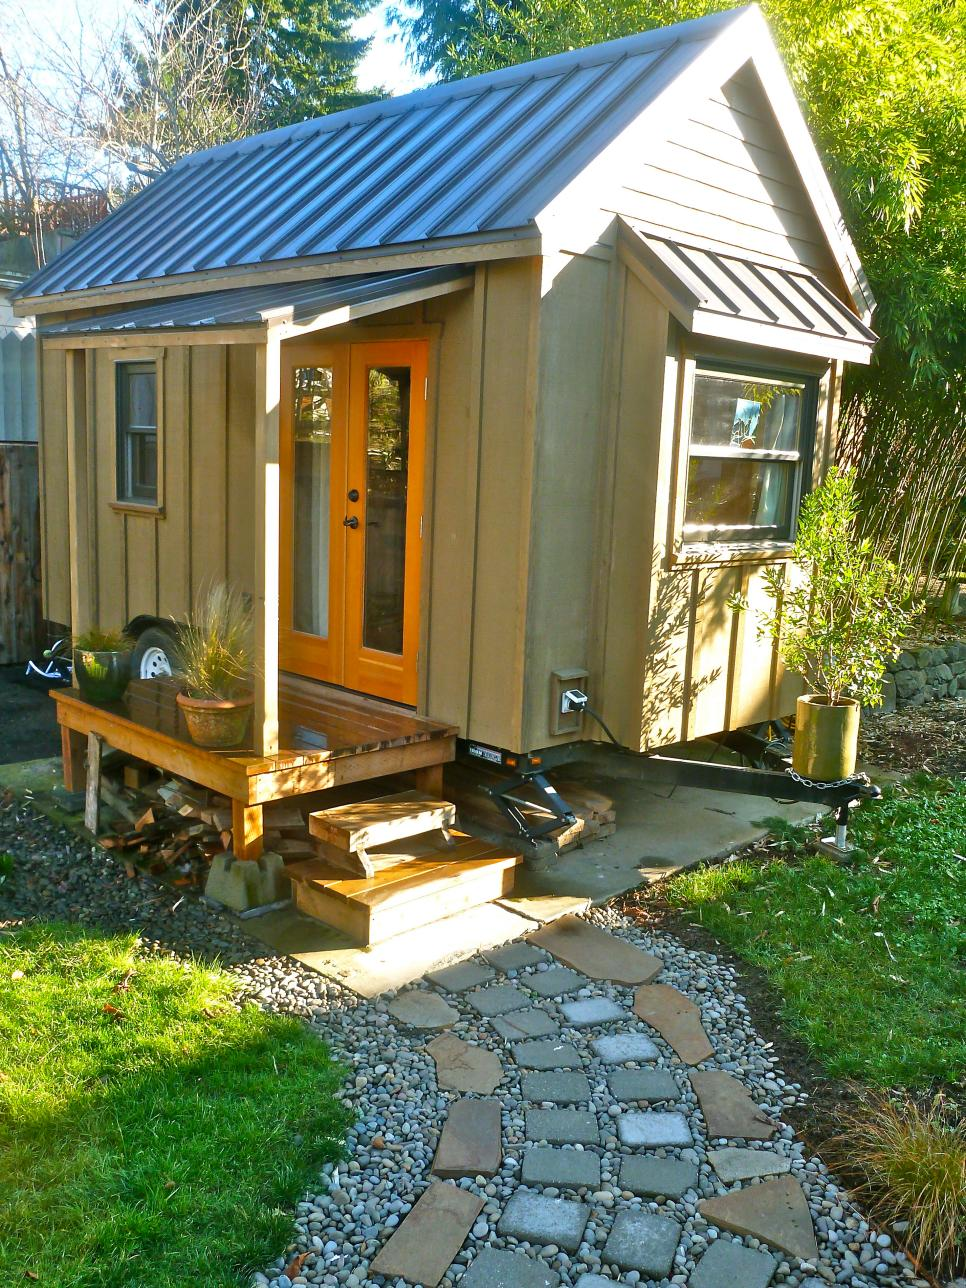 pictures of 10 extreme tiny homes from hgtv remodels hgtv - Pictures Of Tiny Houses